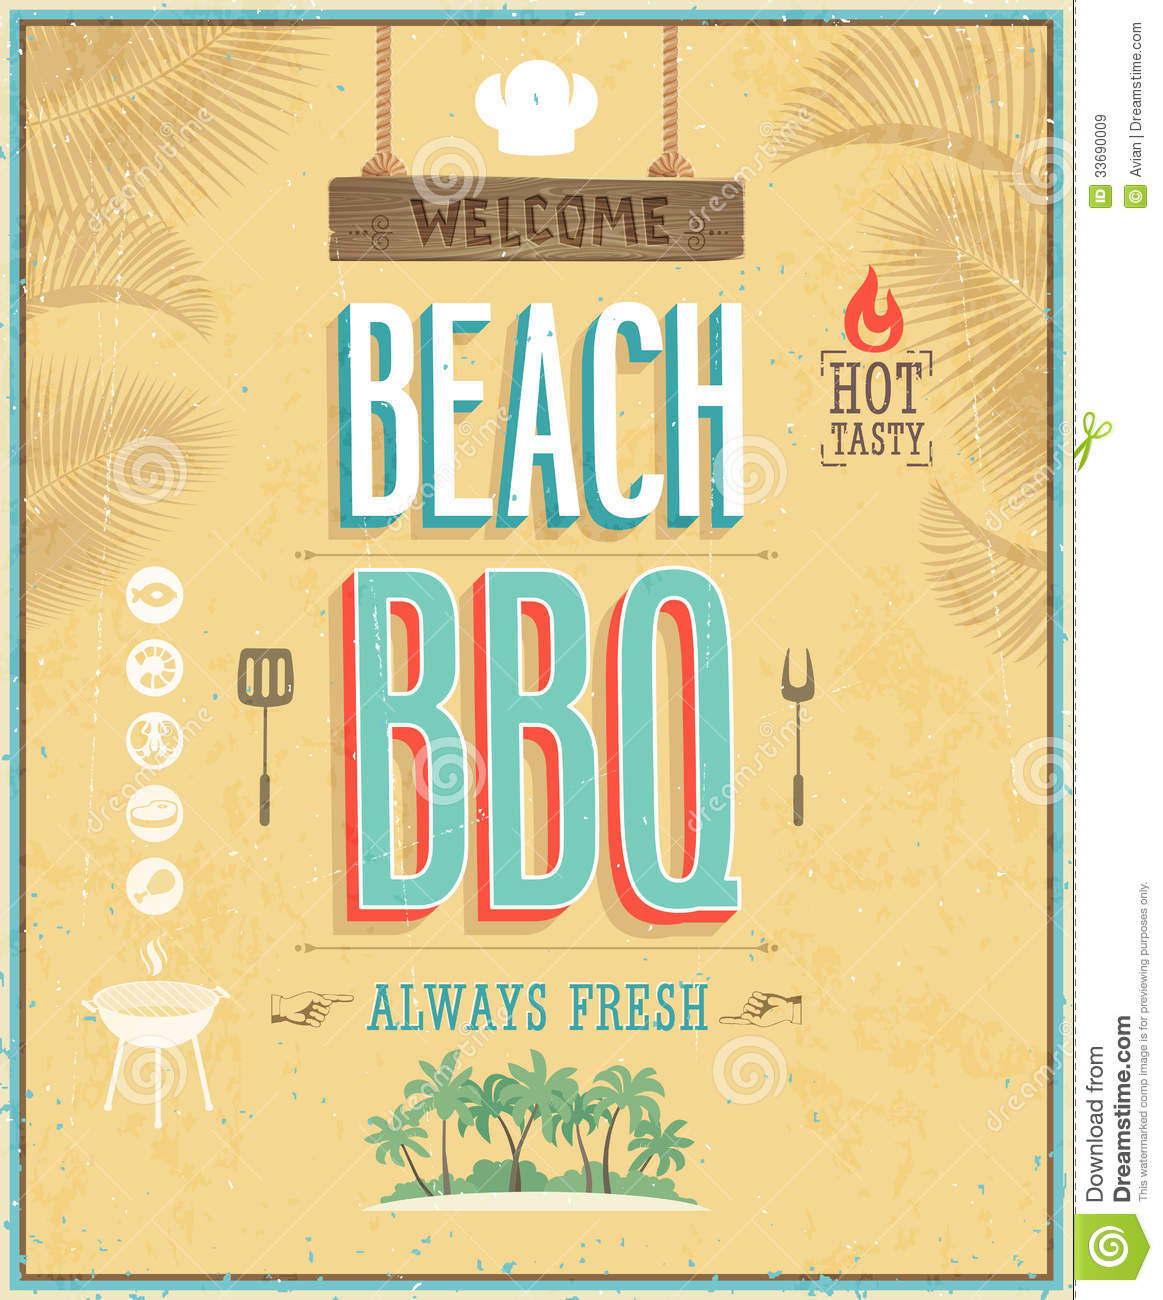 vintage beach bbq poster vector background royalty free